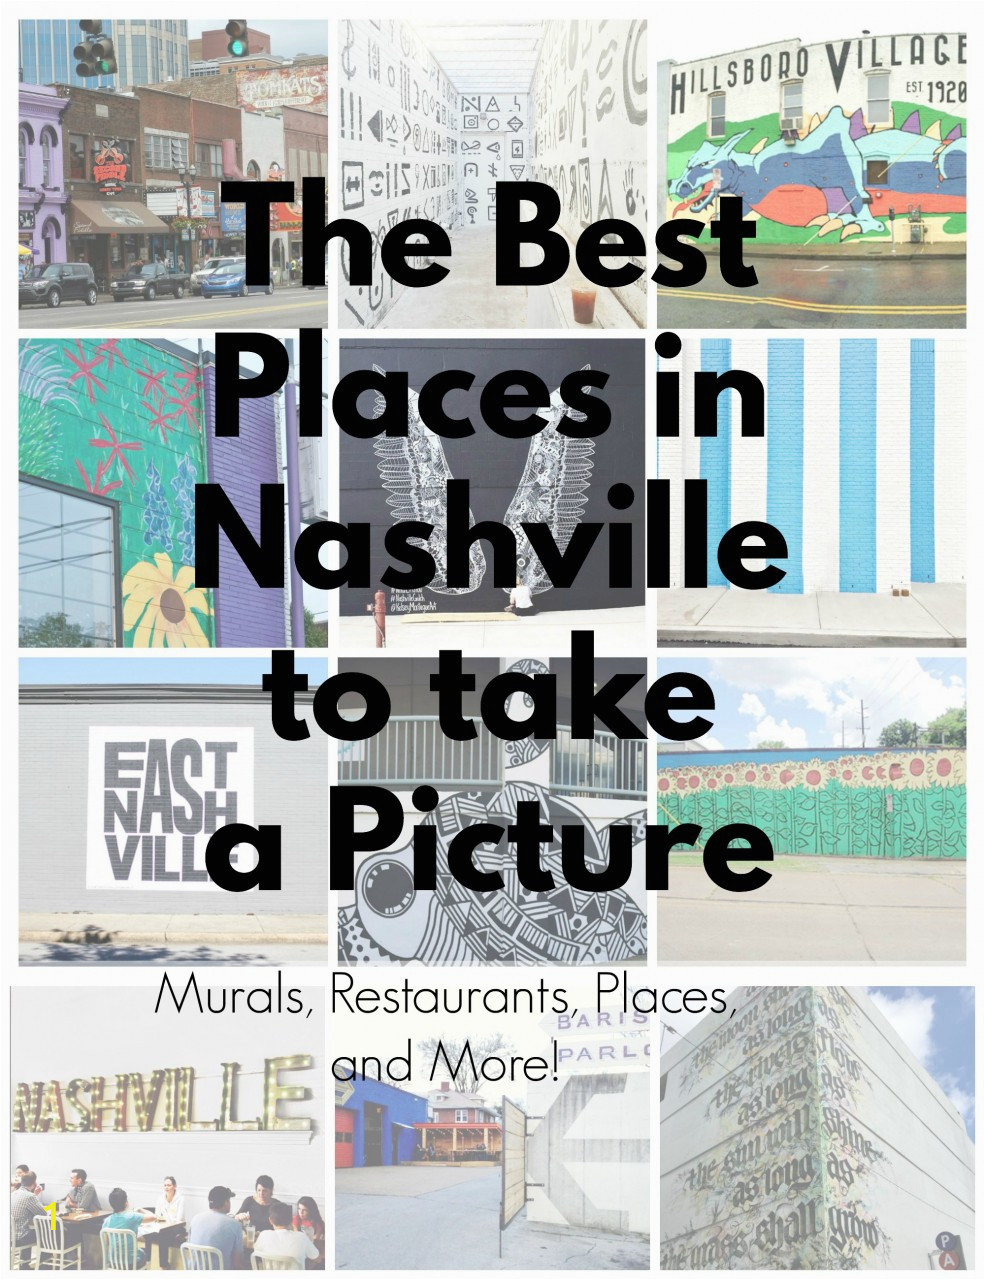 the best places in nashville to take a picturs